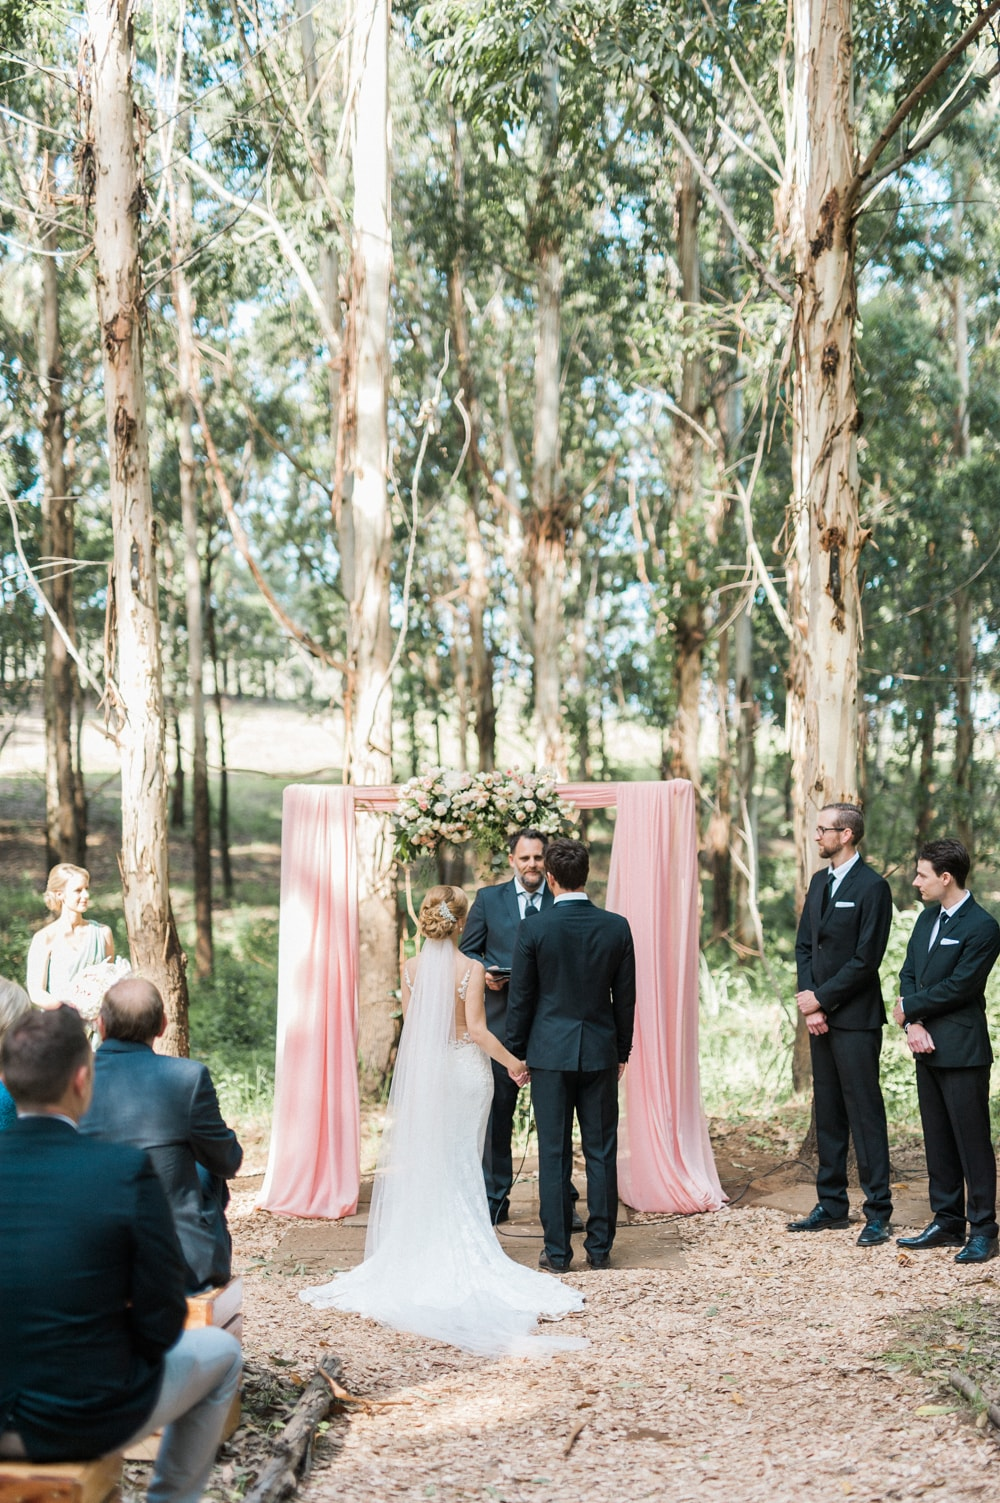 The Venue Fontana Forest Wedding Ceremony | Image: Bright Girl Photography